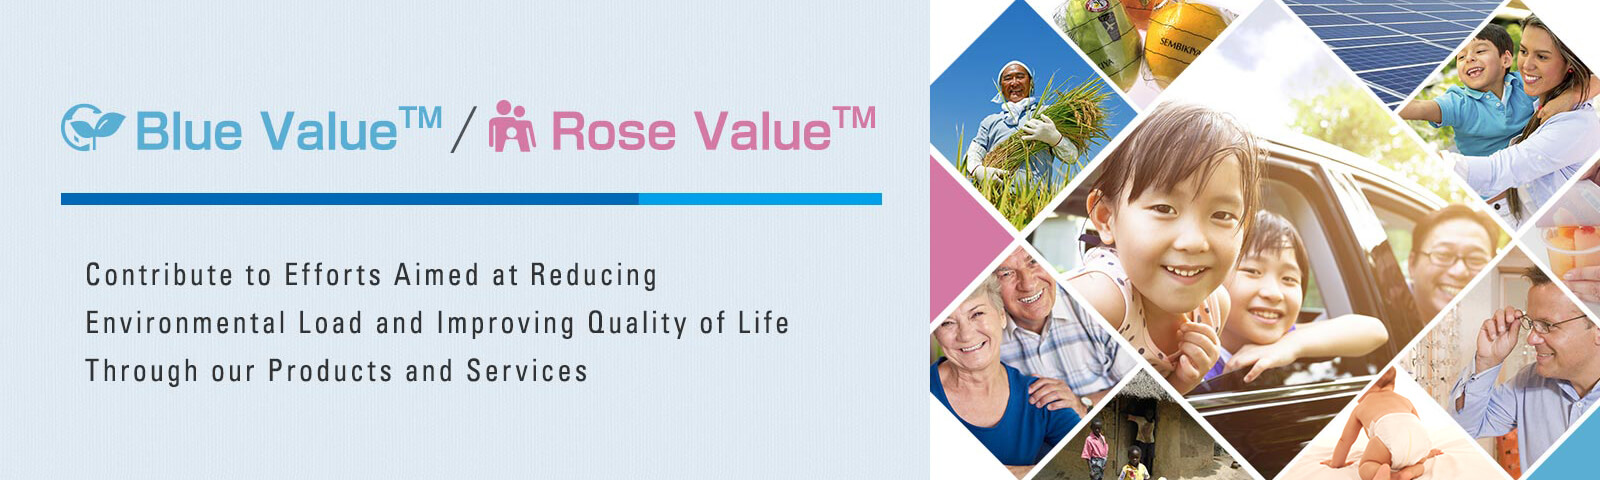 Blue Value™ / Rose Value™ Products